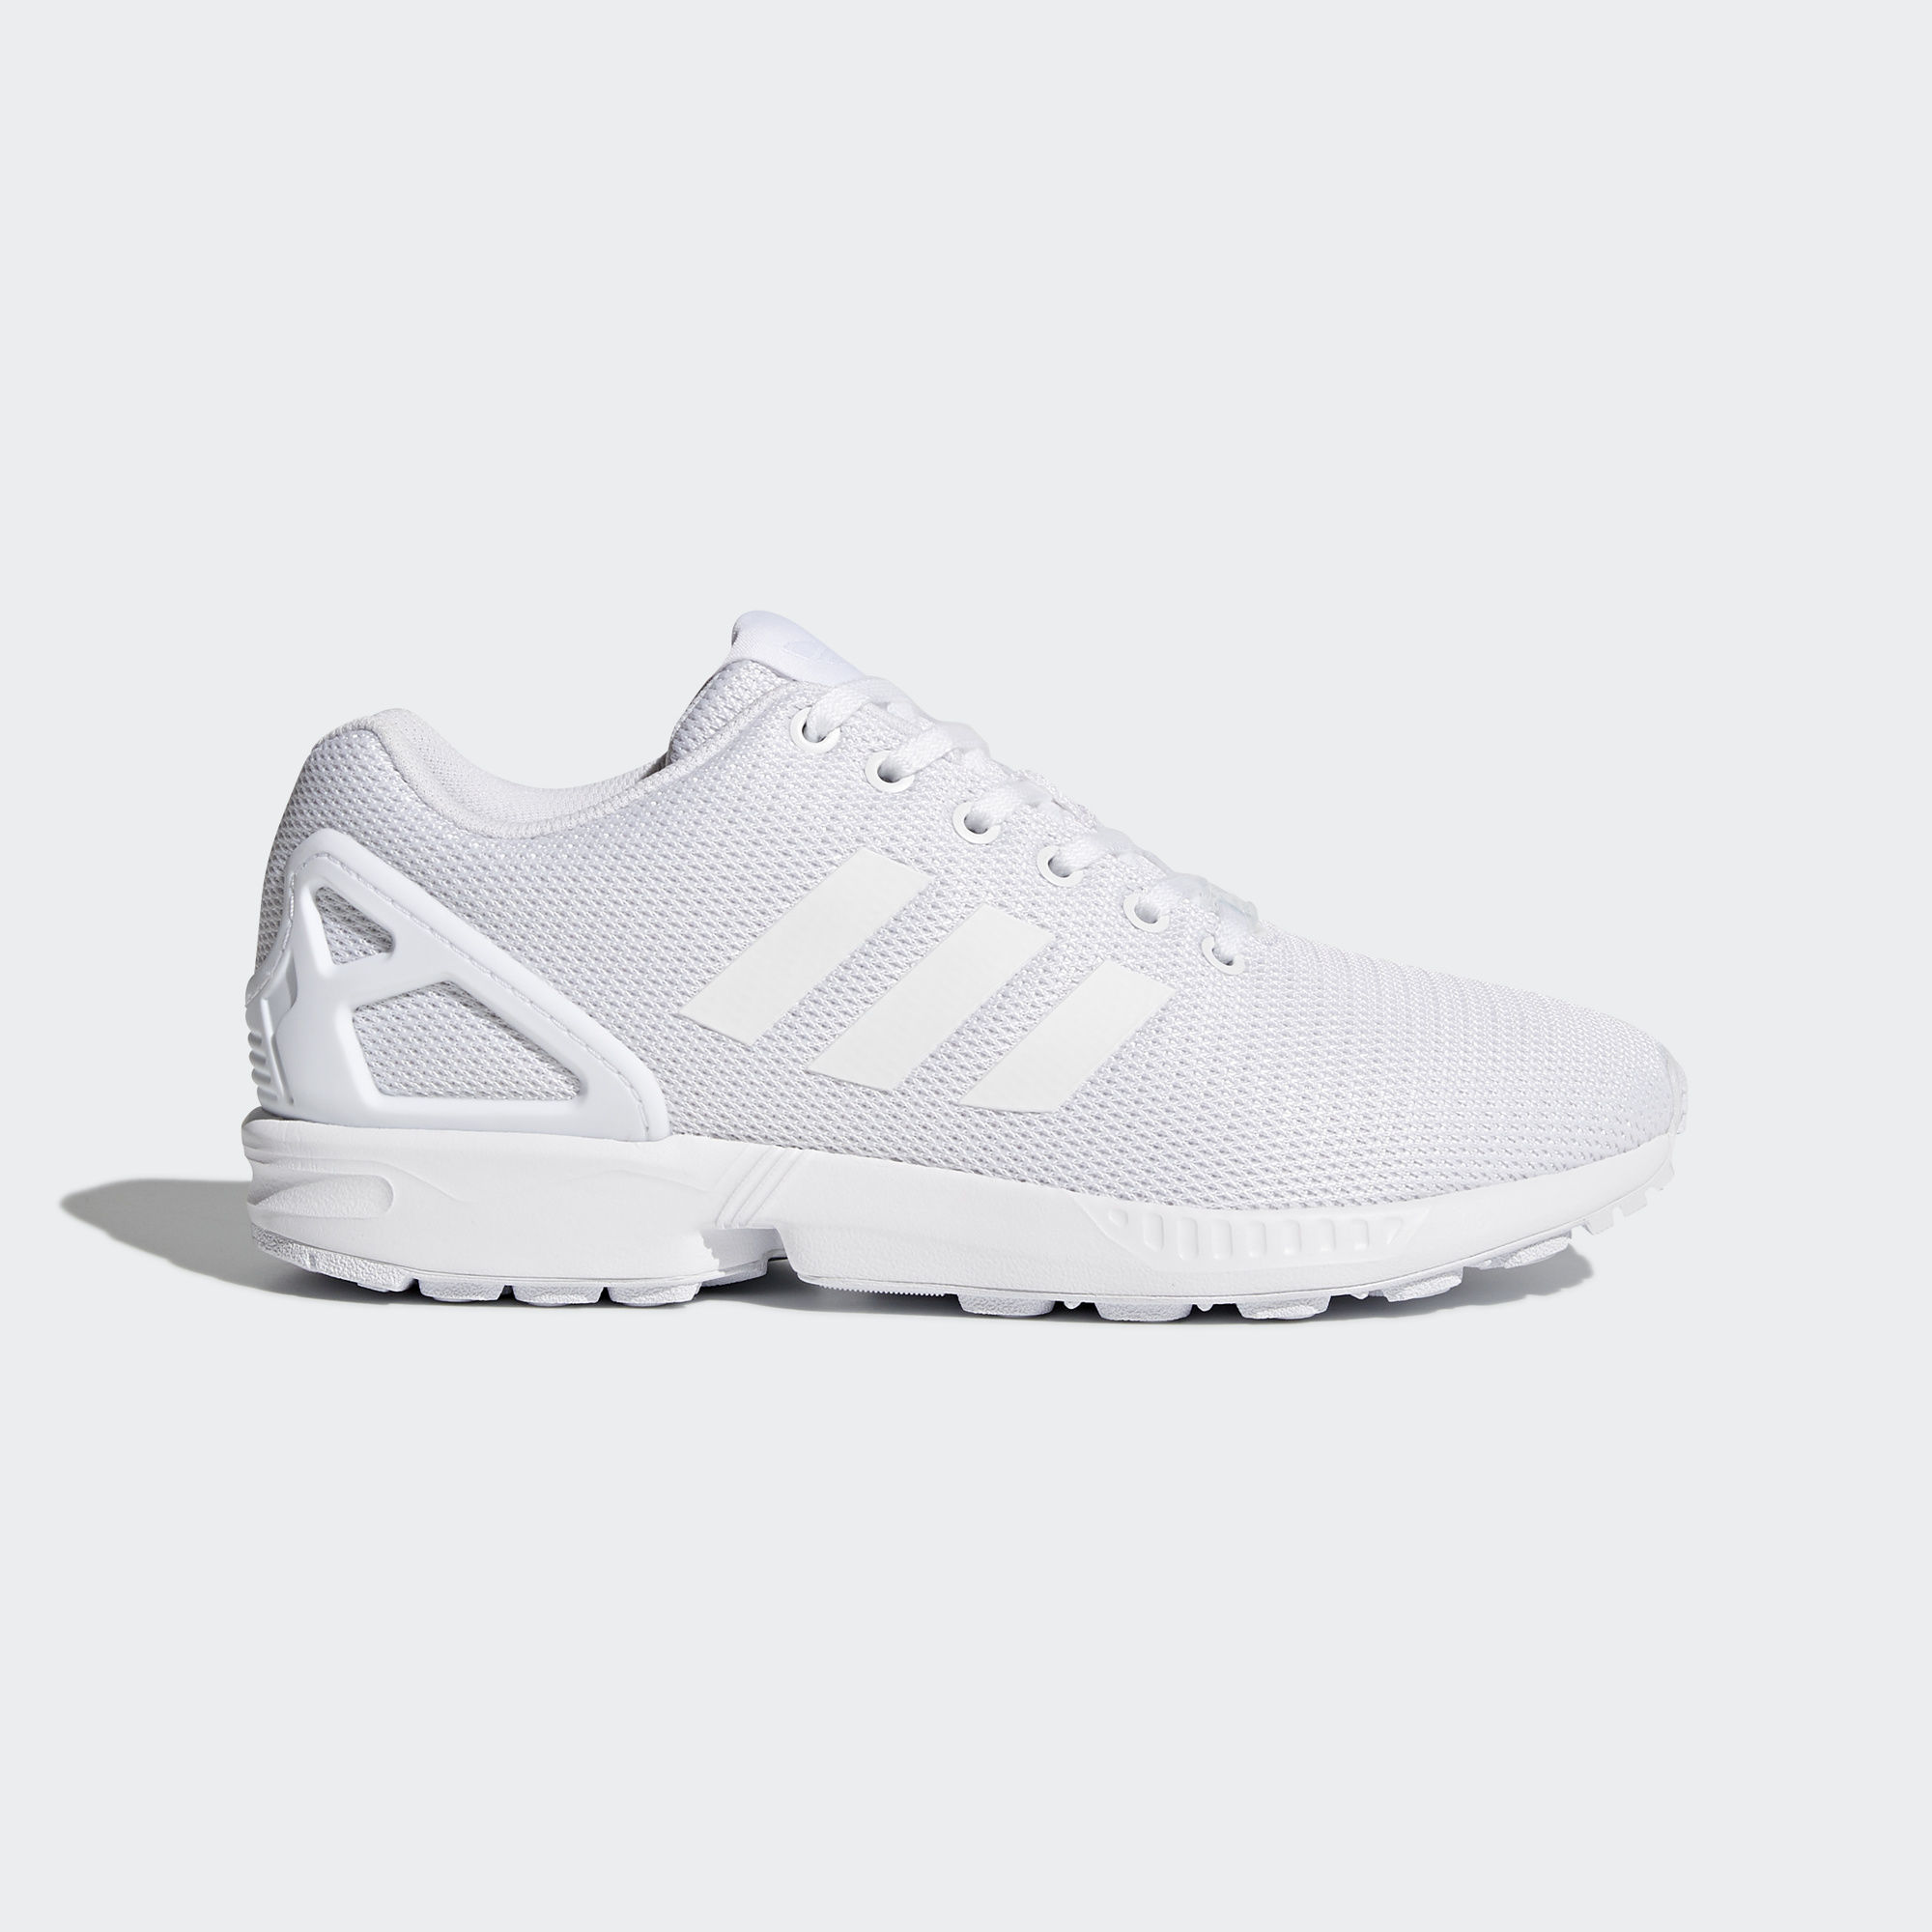 019722ceb4d4 Adidas Zx Flux White   Buy cheap Adidas shoes online - Clvyall.com